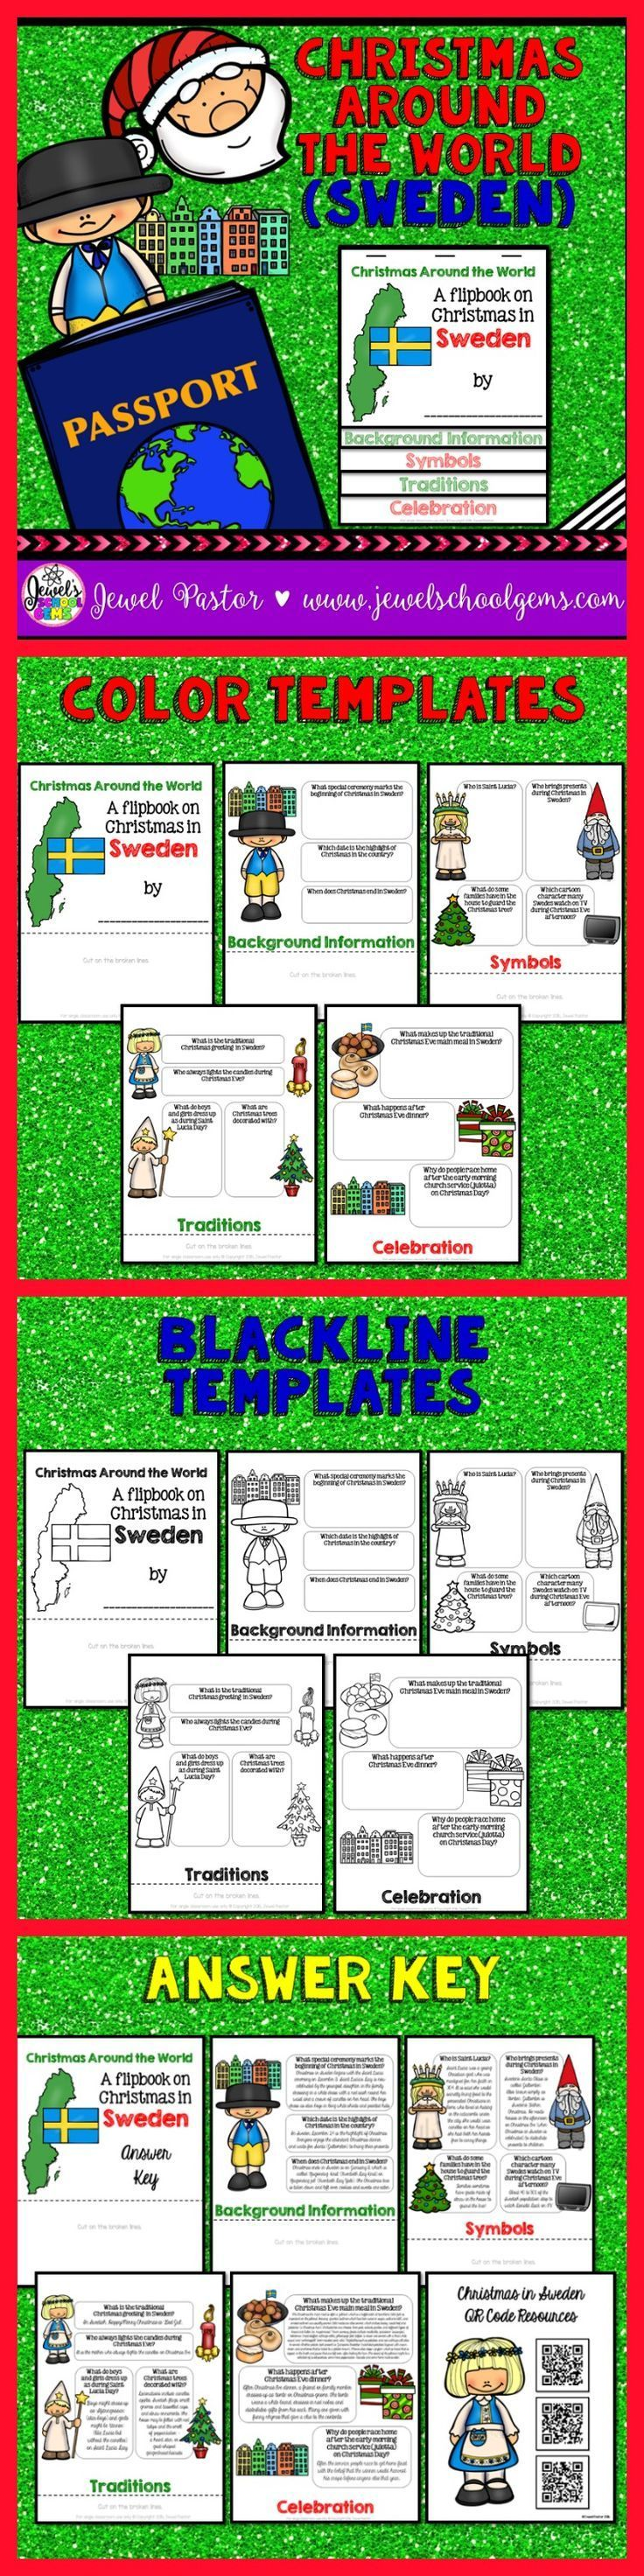 Christmas Around the World Activities (Christmas in Sweden Research Flipbook) |  This Christmas Around the World resource contains: *5 pages of color templates *5 pages of black and white templates *5 pages with answers to the questions (Answer Key) *1 page with QR Code resources | Children will learn about Christmas Around the World traditions and celebrations, specifically in Sweden, in a fun and interactive way with this Christmas Around the World flipbook research project!